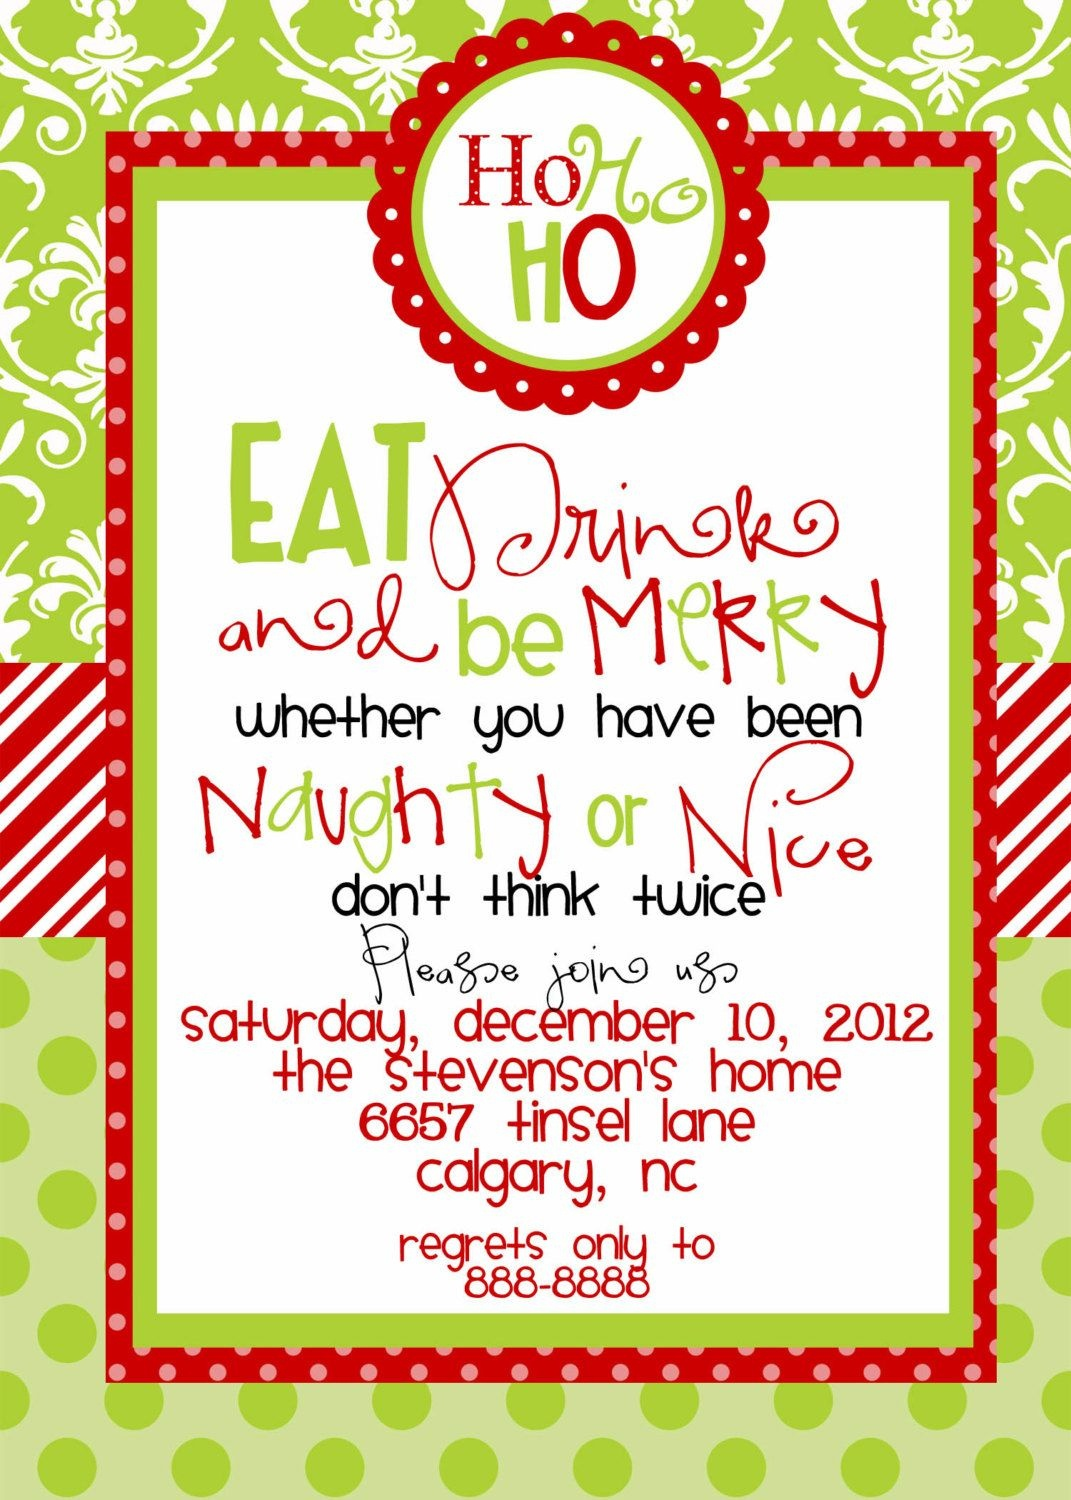 Custom Designed Christmas Party Invitations Eat Drink And Be Merry - Free Online Printable Christmas Party Invitations